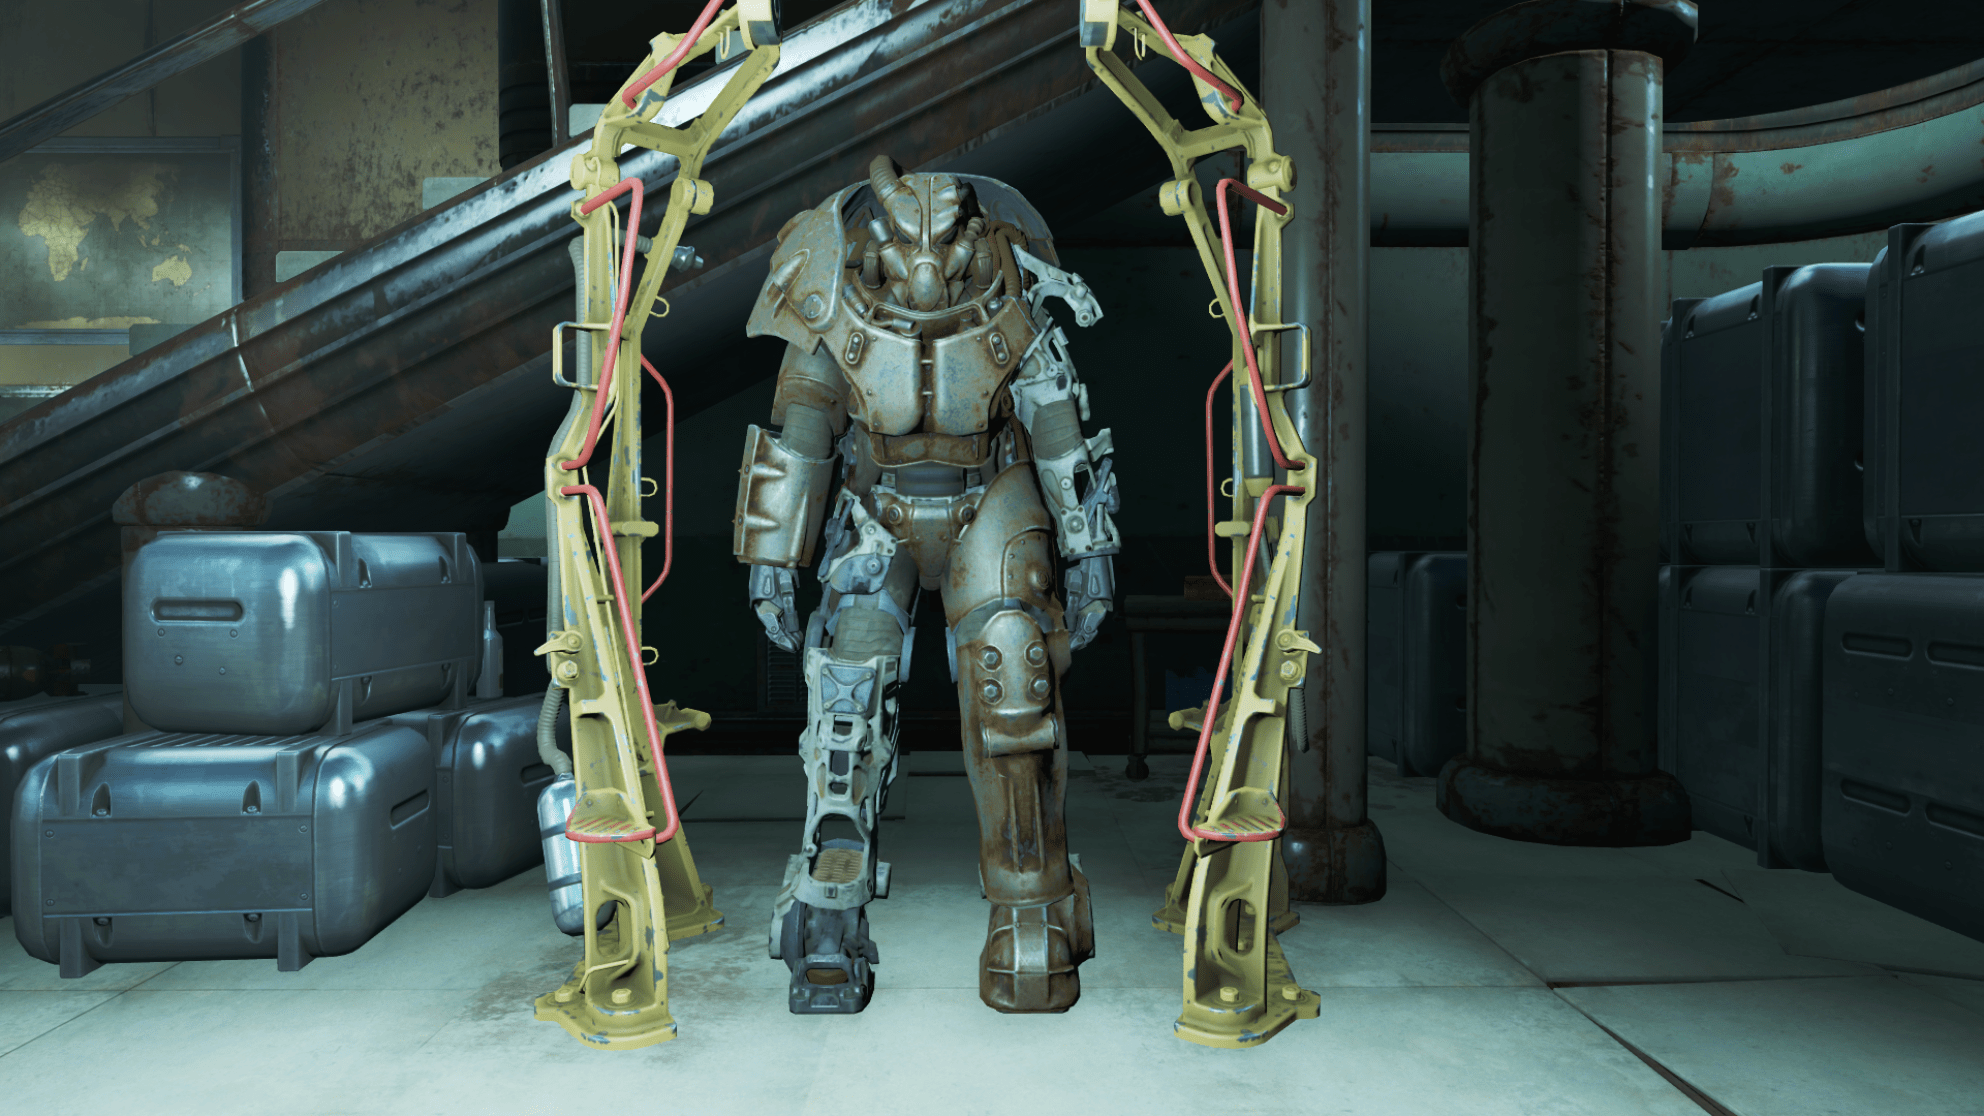 Fallout 4: Best Power Armor - Where to find the X-01